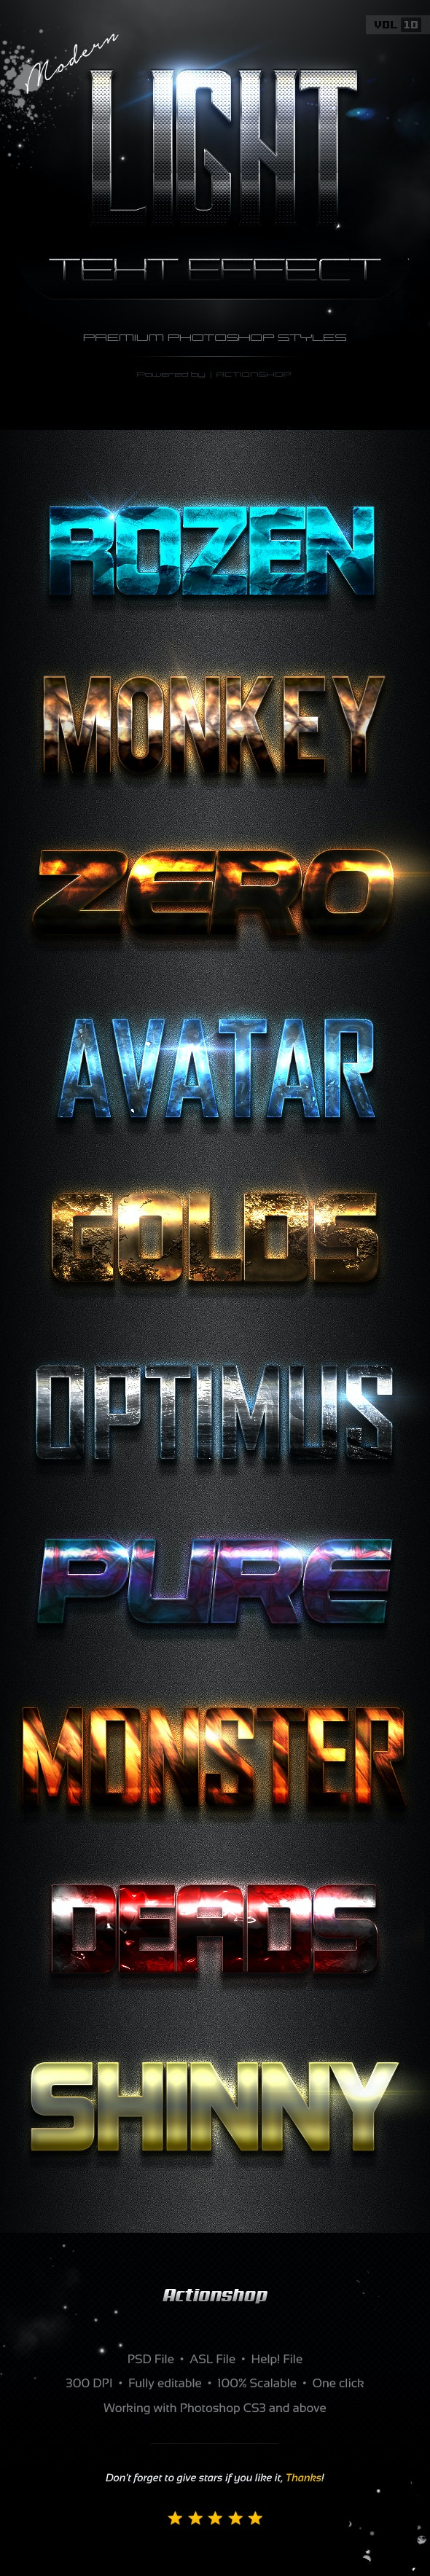 10 Modern Light Text Effects Vol.10 - Text Effects Styles